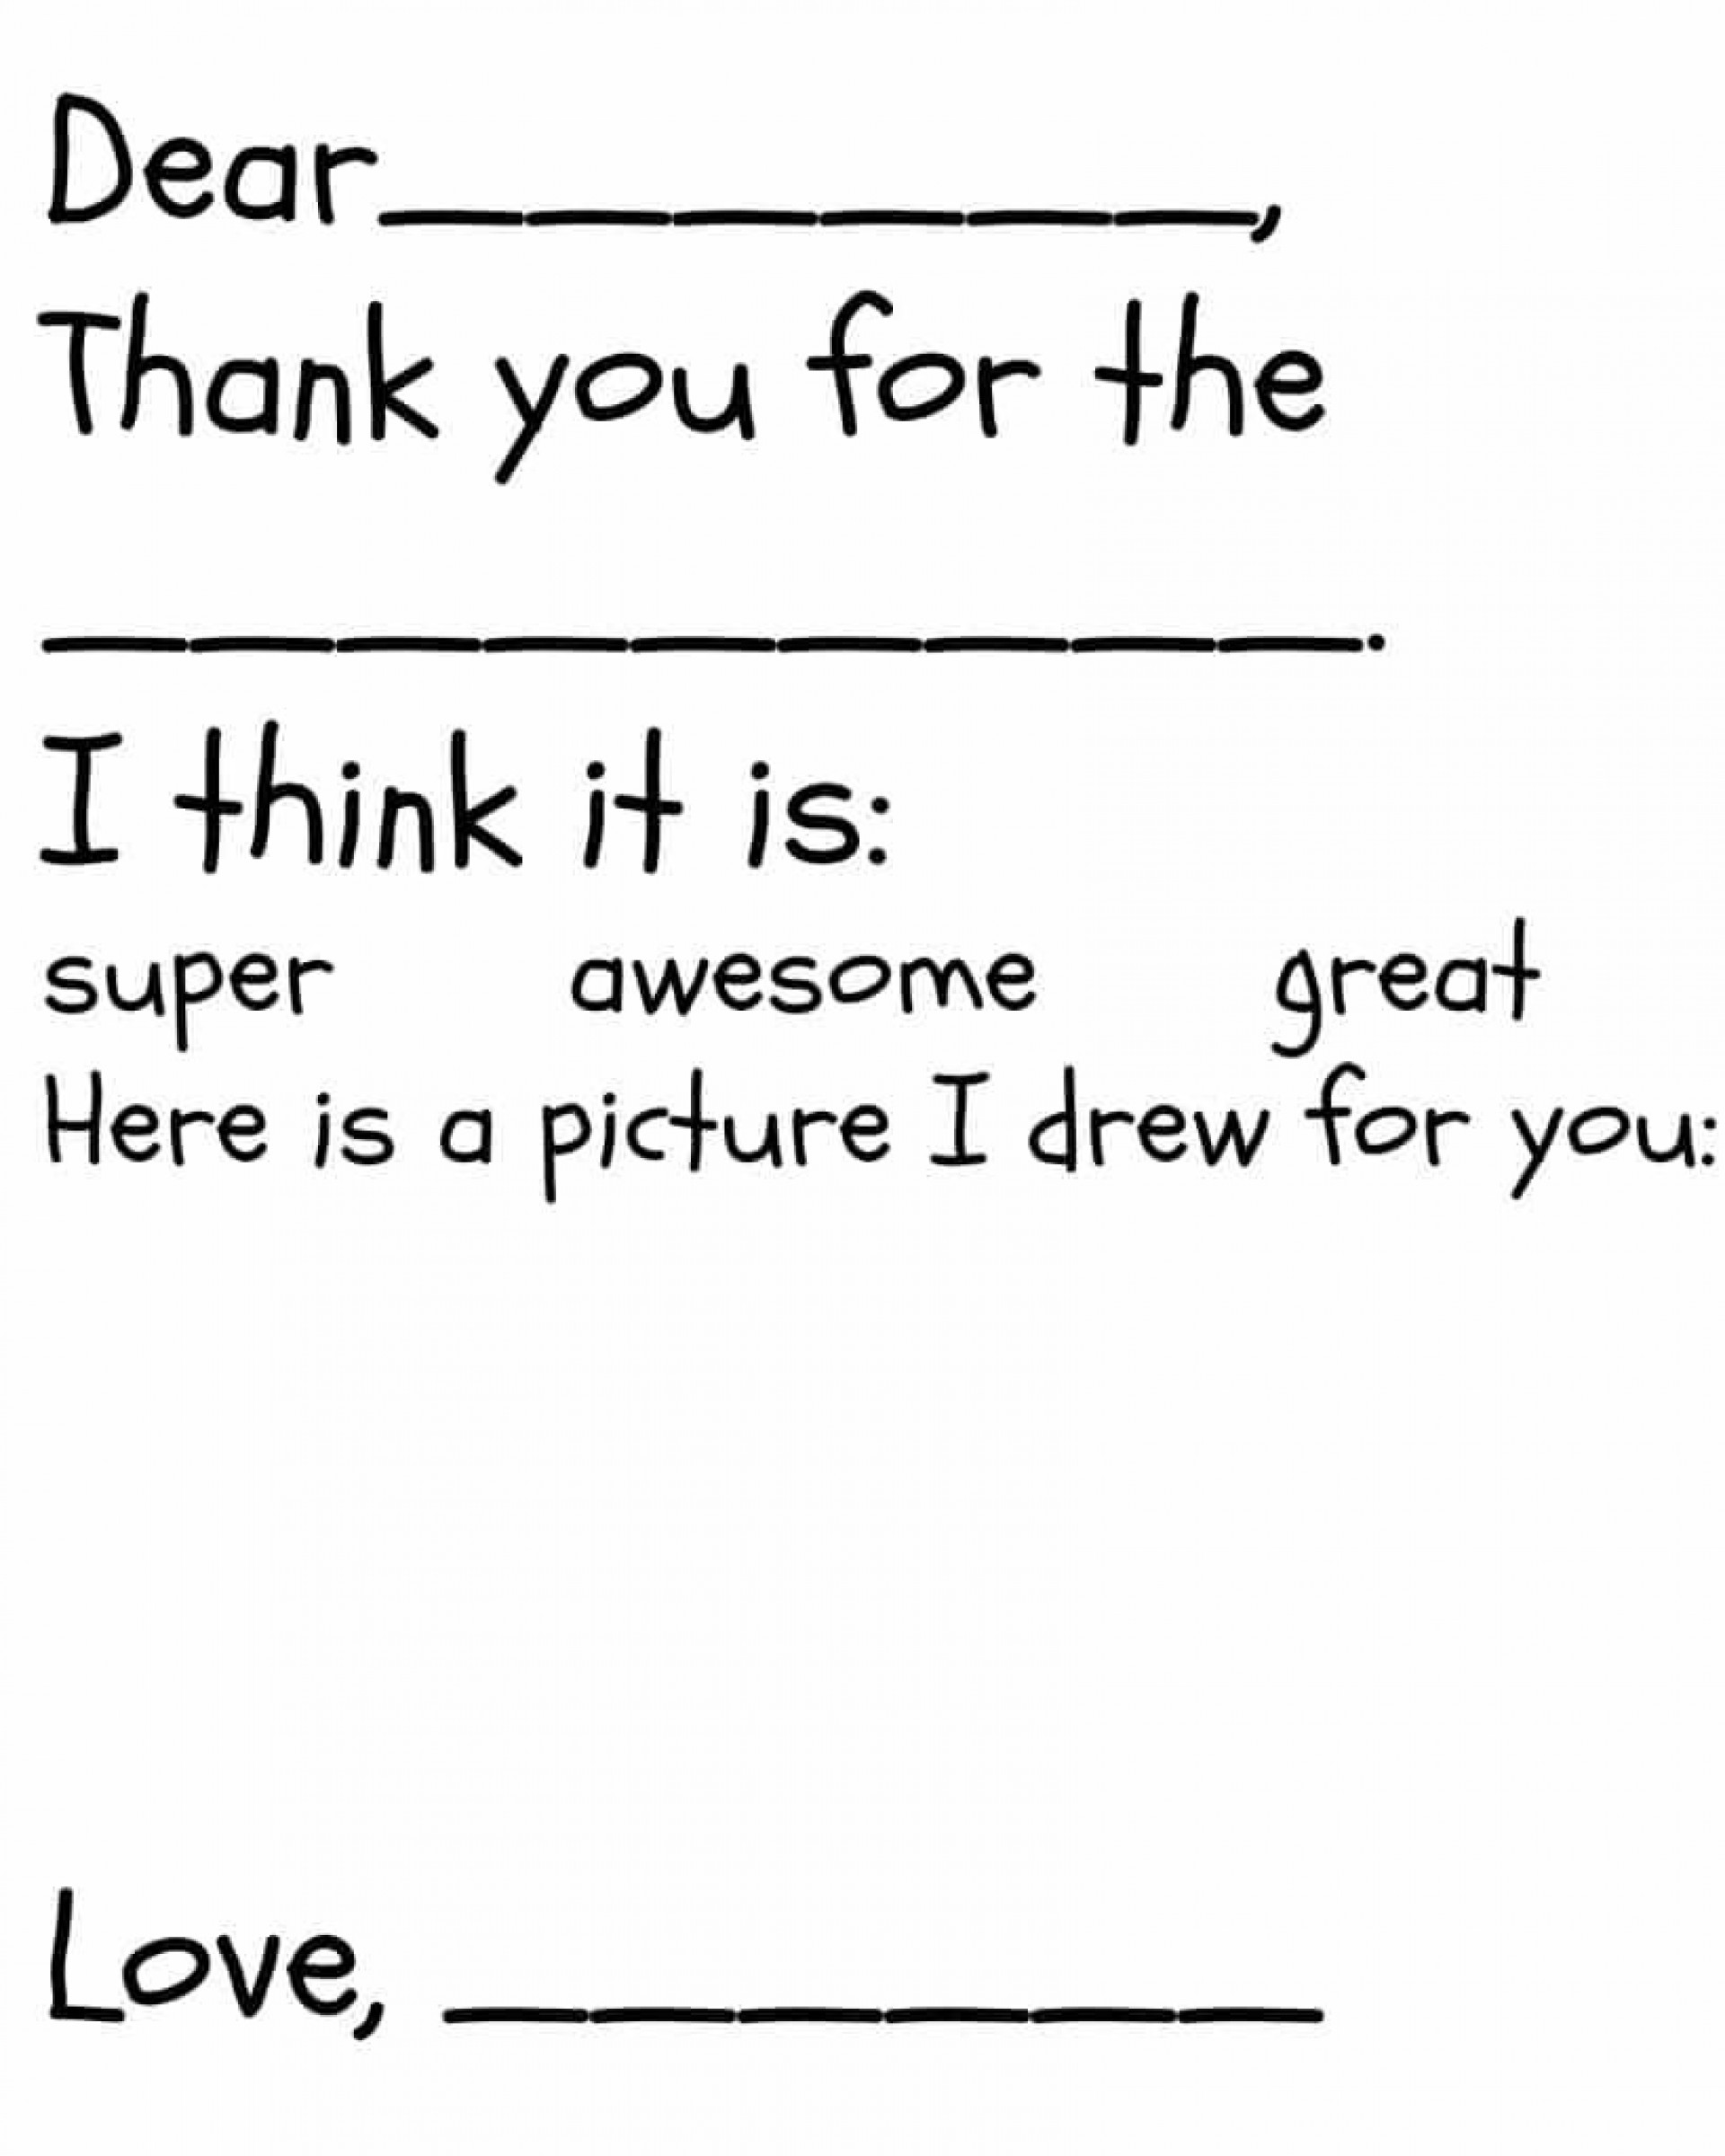 005 Fantastic Thank You Note Template For Kid High Definition  Kids Child Pdf Letter1920